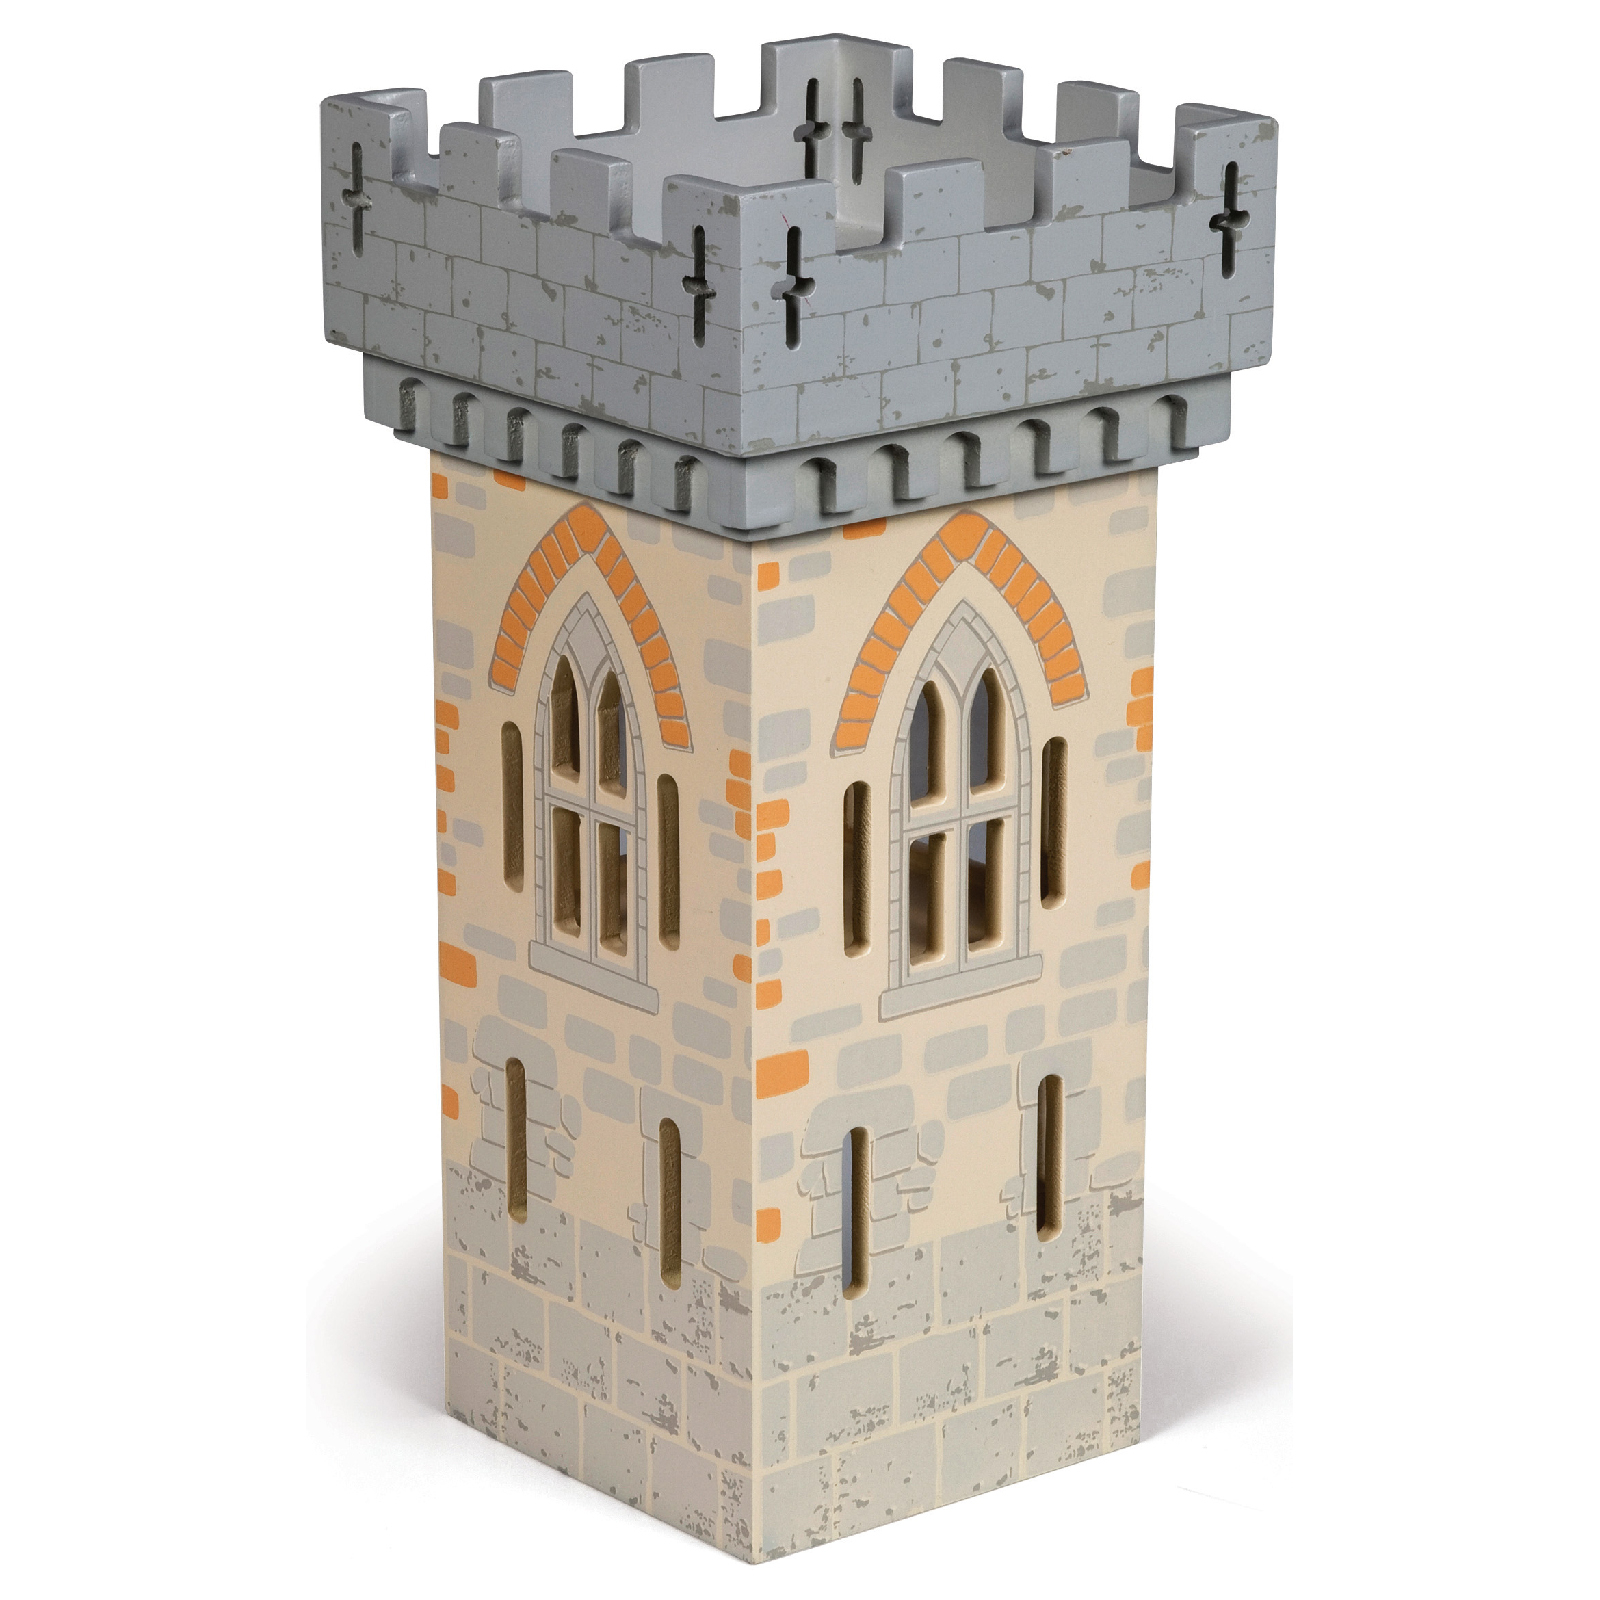 Papo Medieval Era: Weapon Master Castle - 1 Large Tower